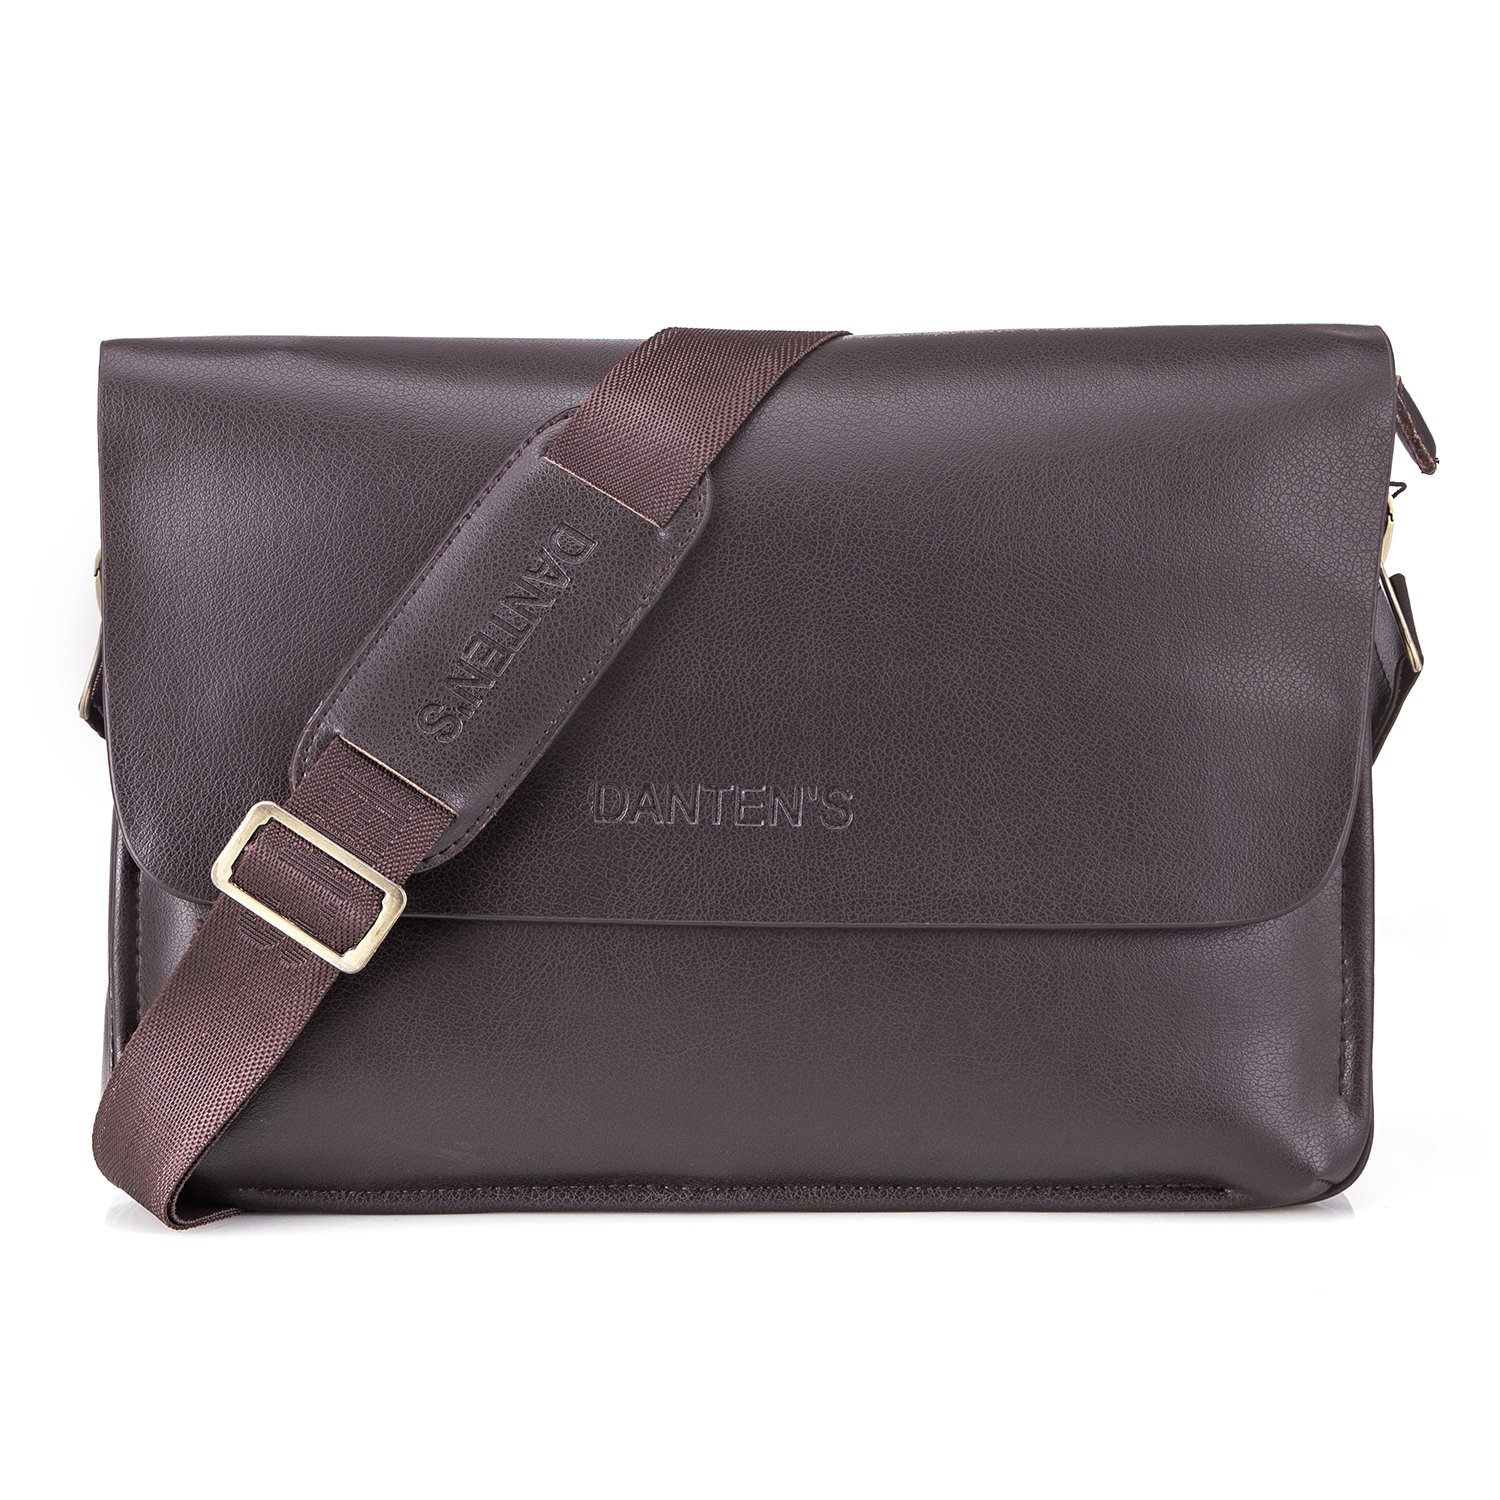 d224157562 Bienna Men Bags Crossbody Shoulder Bag Brown Genuine Leather Business  Messenger Bag for Work Travel Office